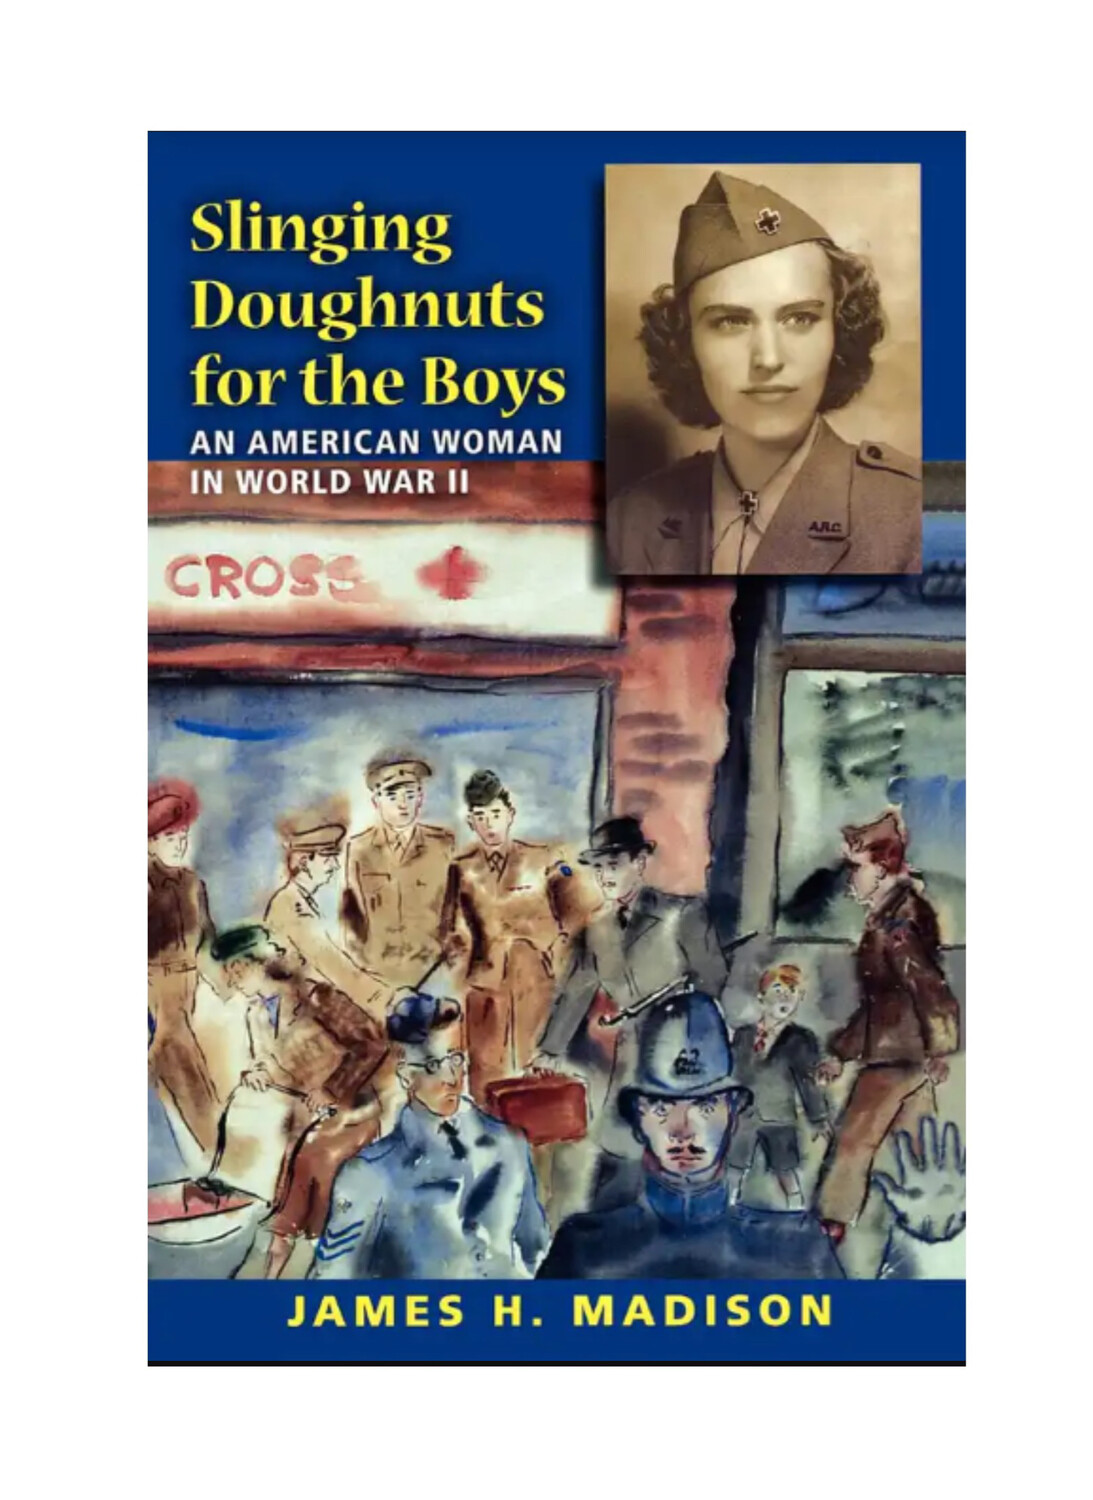 Slinging Doughnuts For The Boys by James H Madison